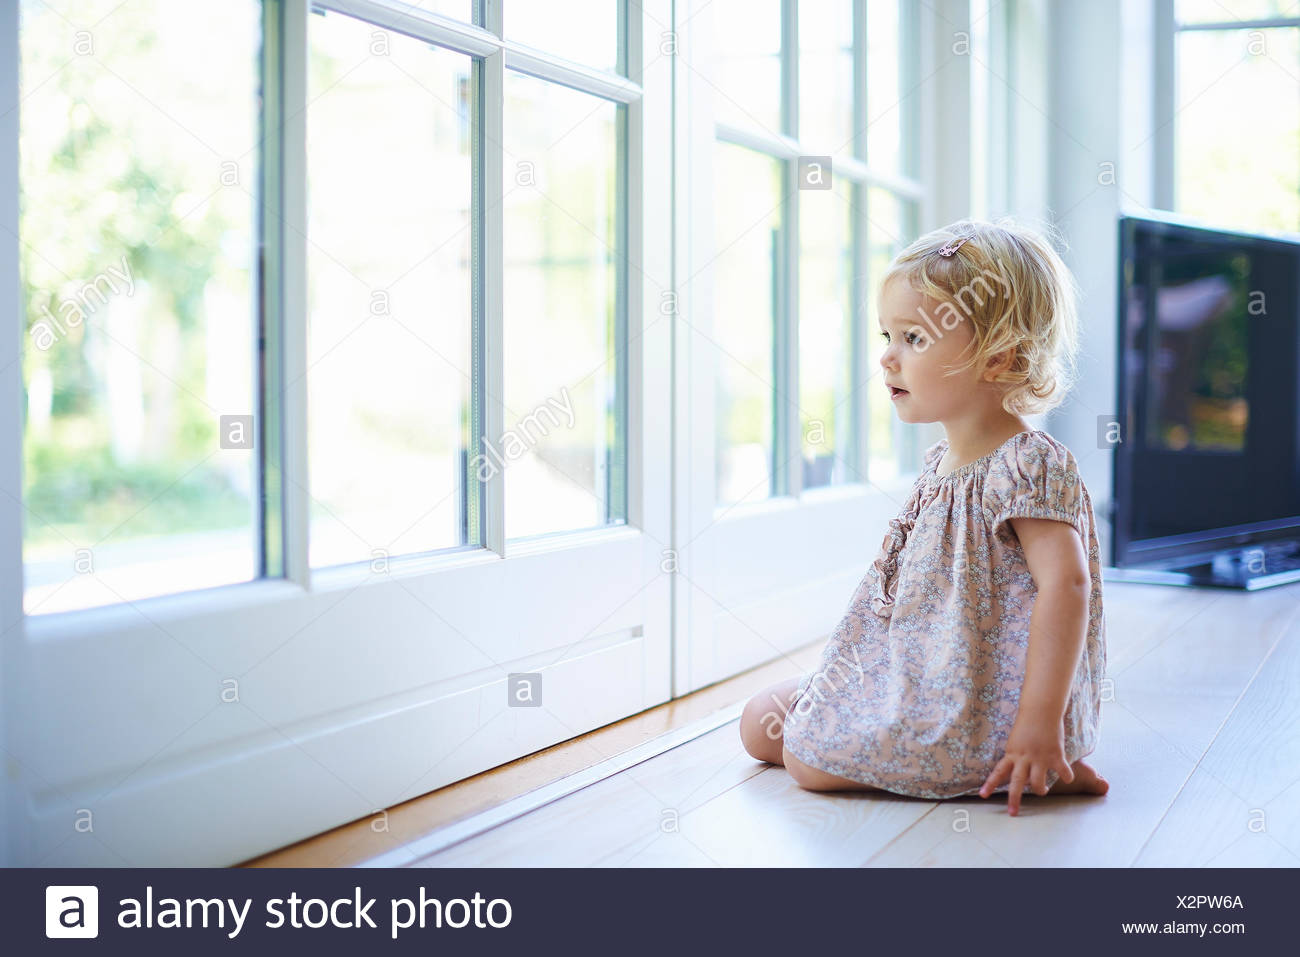 Portrait female toddler sitting on floor looking out of patio doors - Stock Image